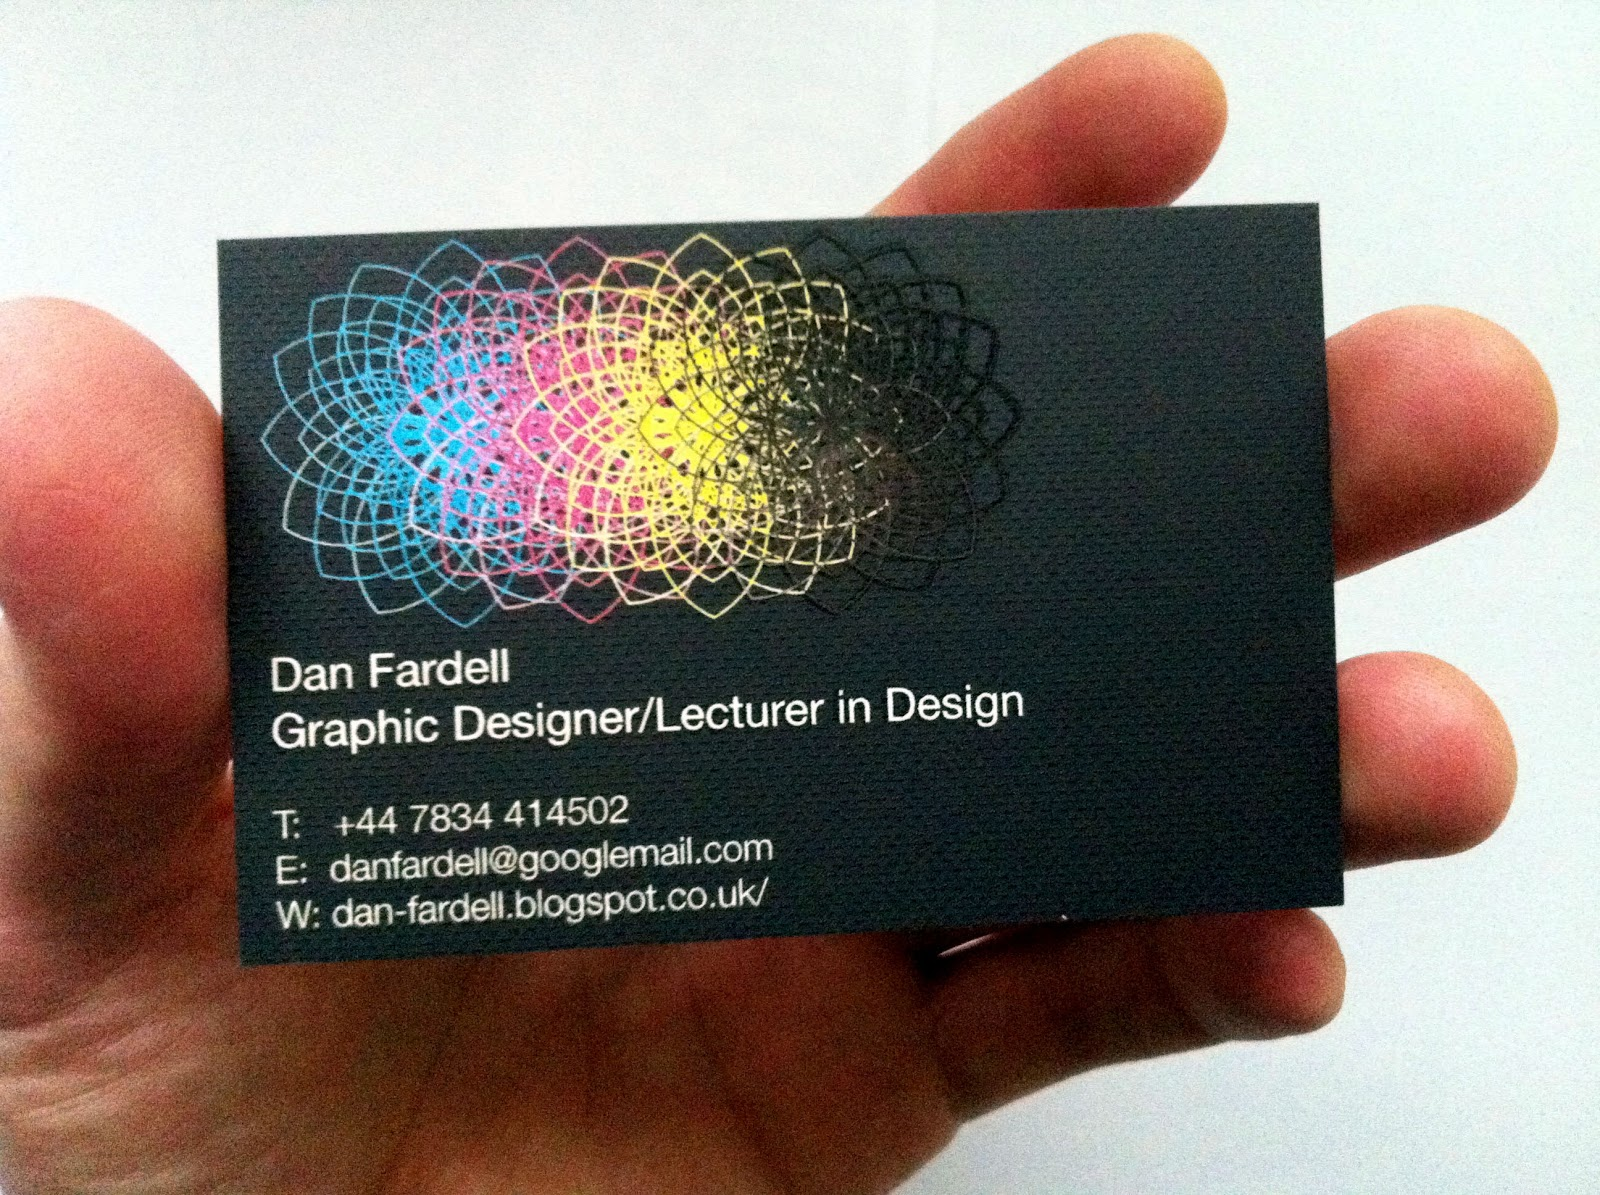 Dan fardell design lecturer thursday 190412 new business happy with the outcome the digital embossed element really adds definition and a new dynamic to the cards i cant wait to start handing them out reheart Image collections